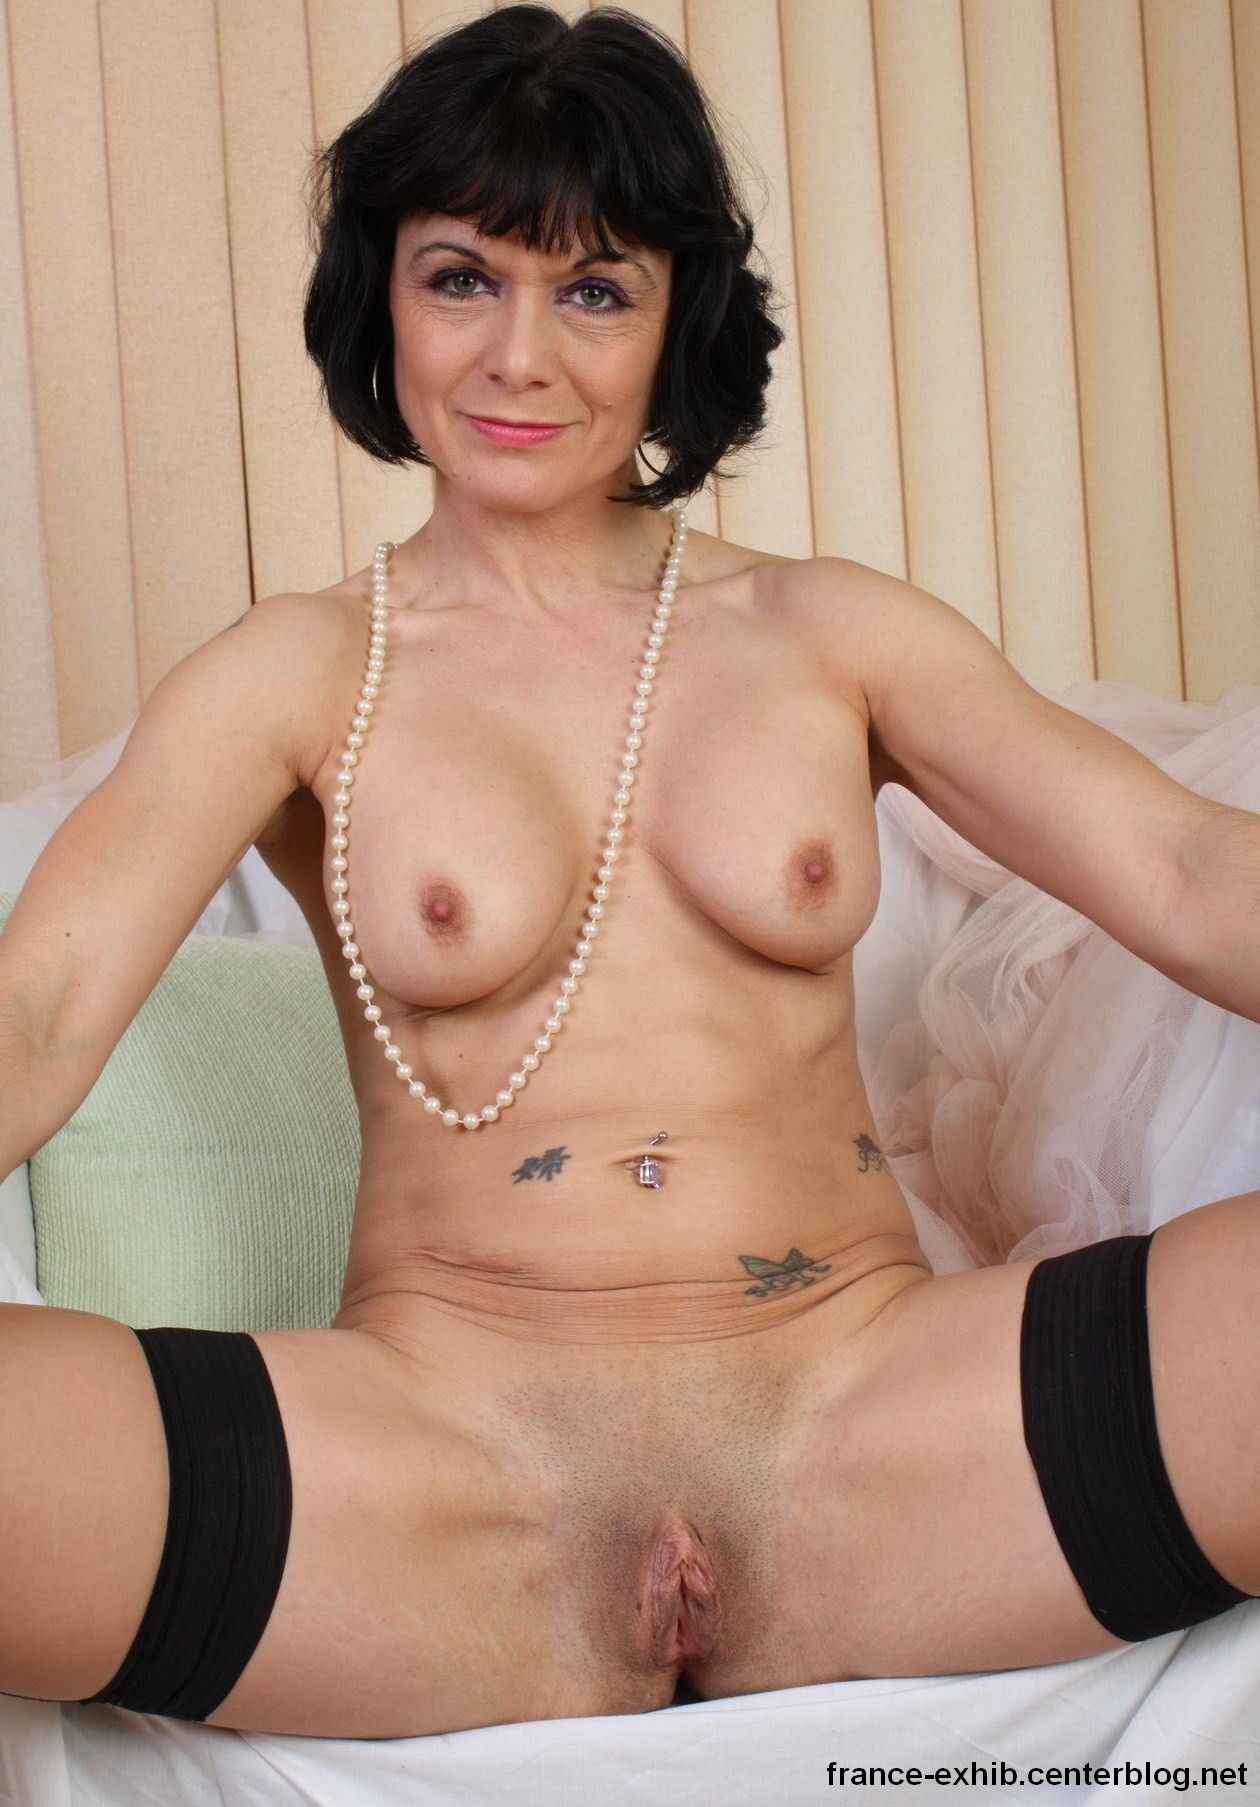 video x francaise gratuite mature fellations